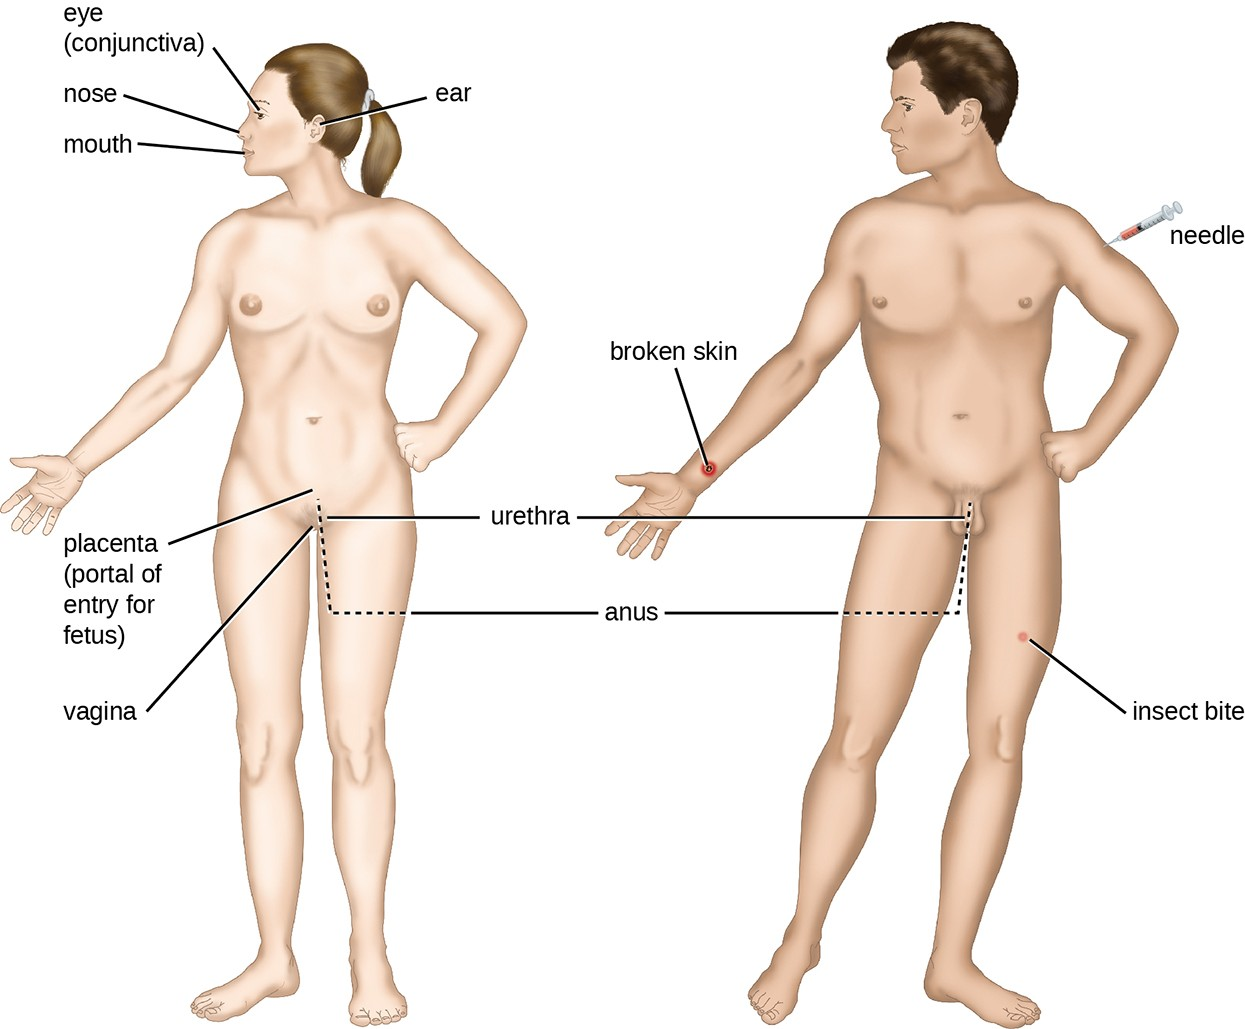 Shown are different portals of entry where pathogens can gain access into the body. With the exception of the placenta, many of these locations are directly exposed to the external environment.